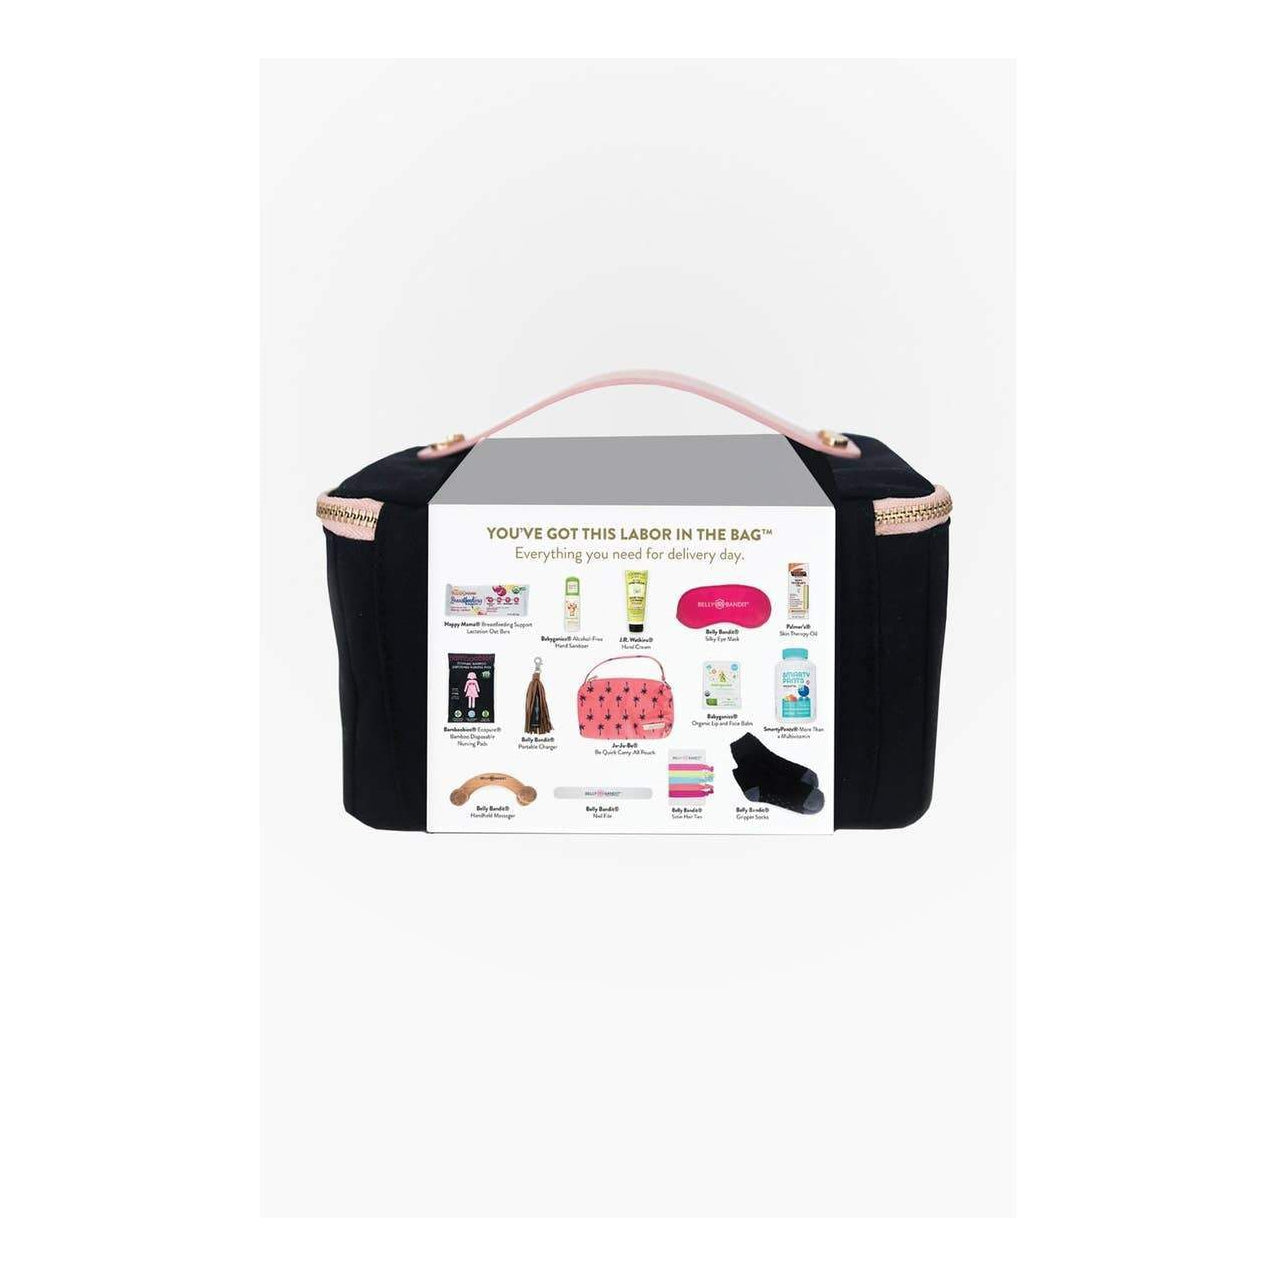 belly bandit ultimate labor and delivery kit pregnancy maternity baby bump